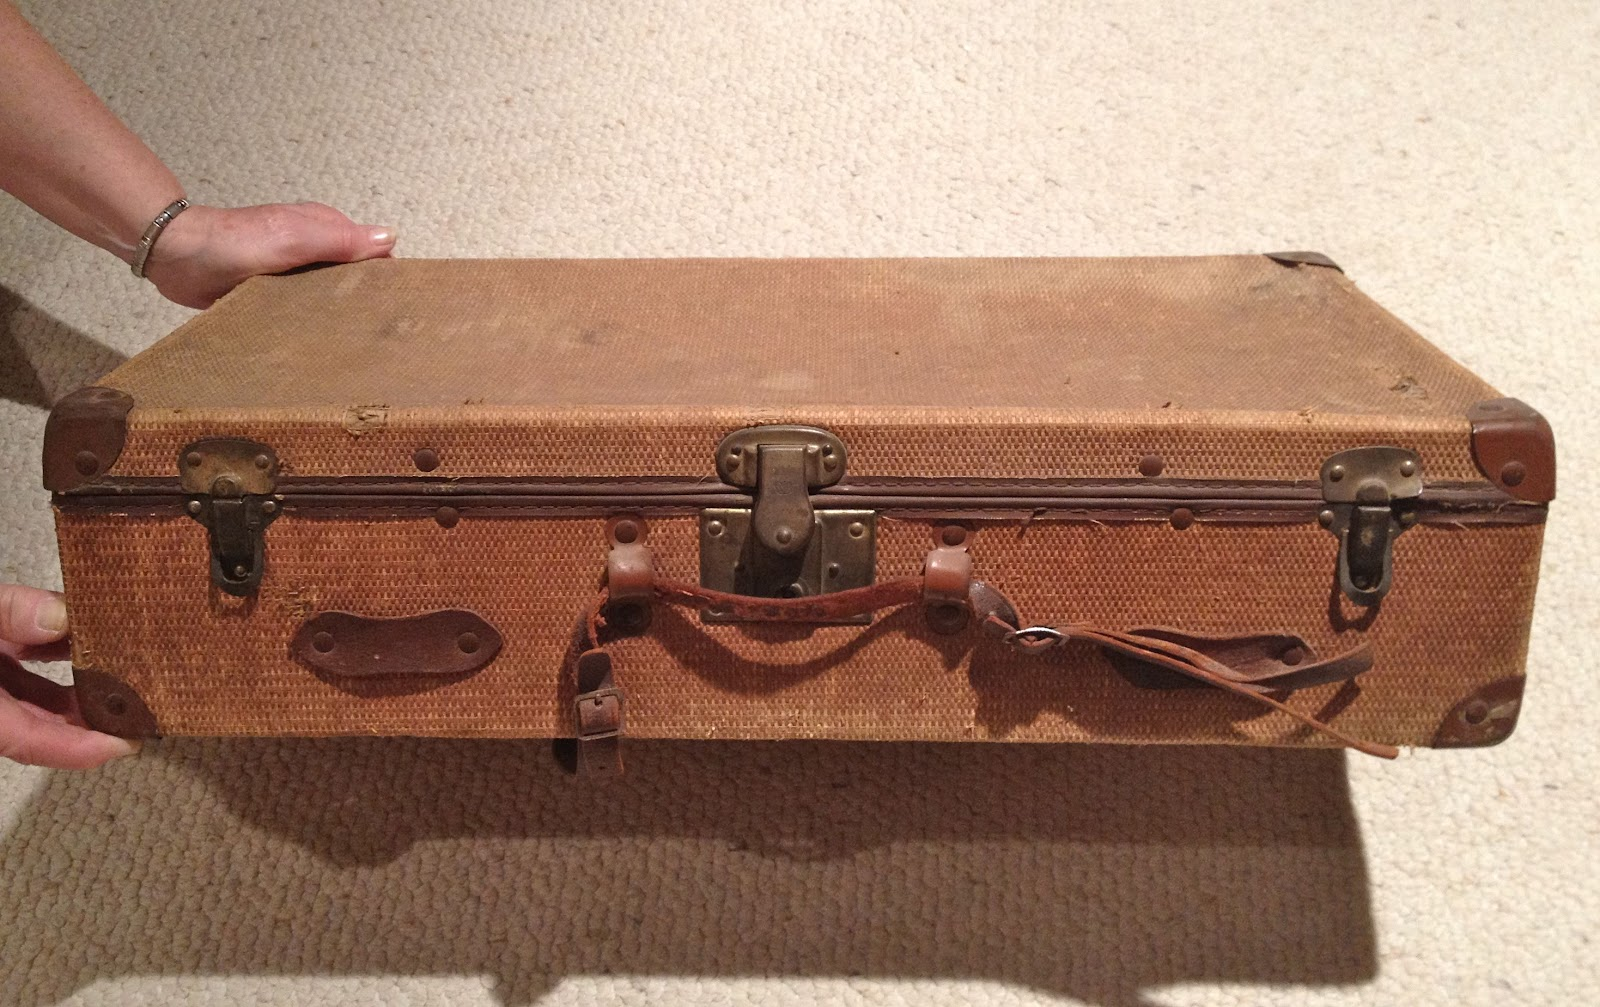 Upcycled home d cor giving new life to vintage suitcases for The vintage suitcase